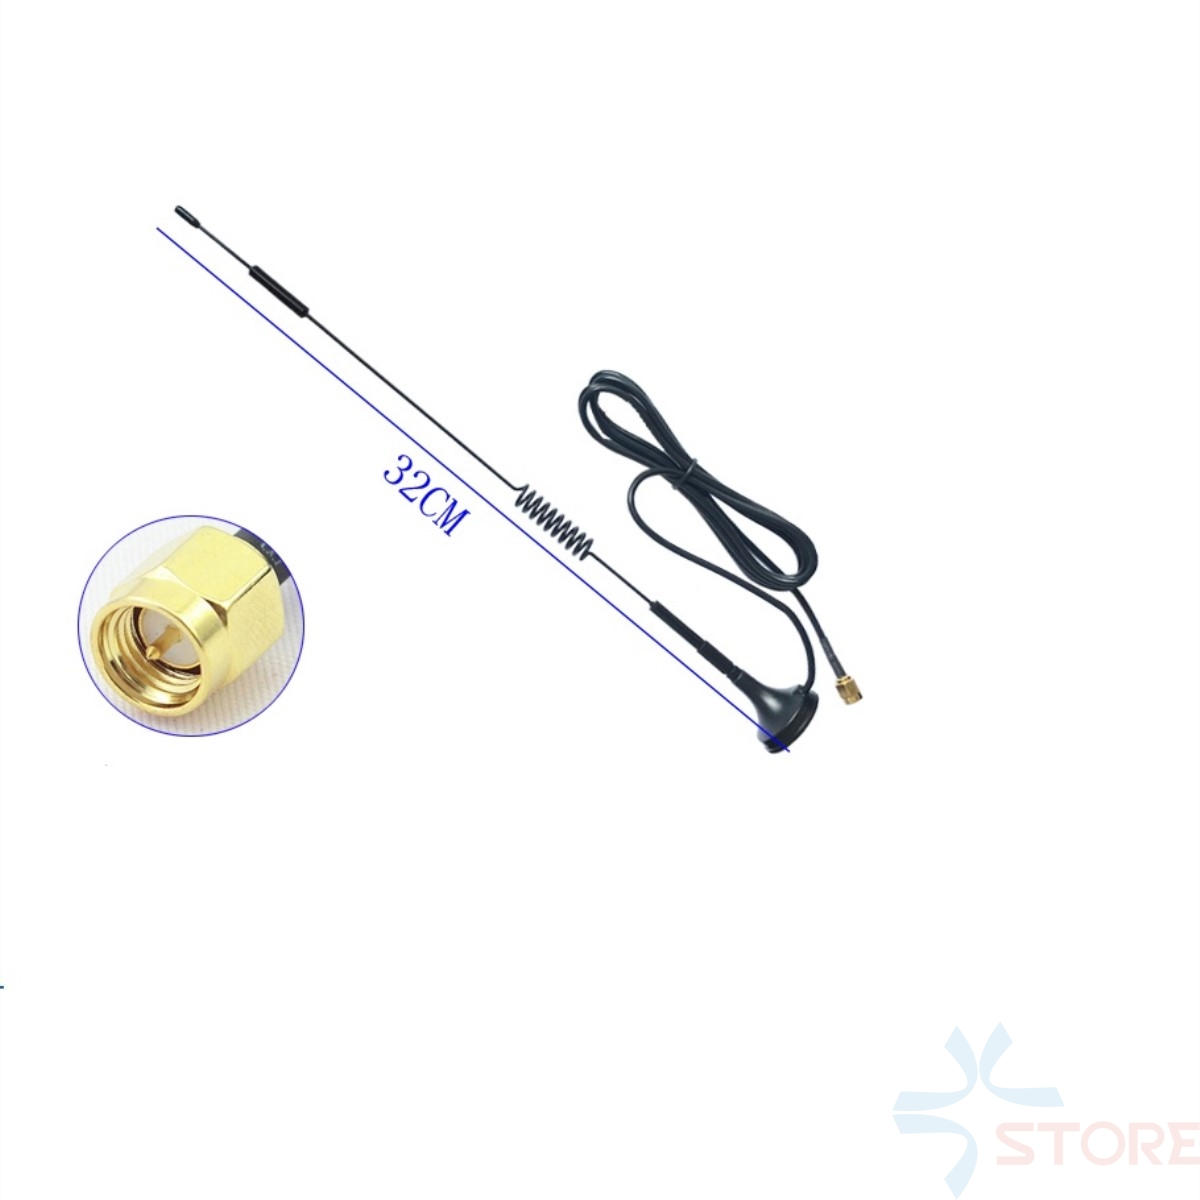 433Mhz 12dbi high gain sucker aerial Antenna 3M cable SMA For 433Mhz 3DR Radio Telemetry